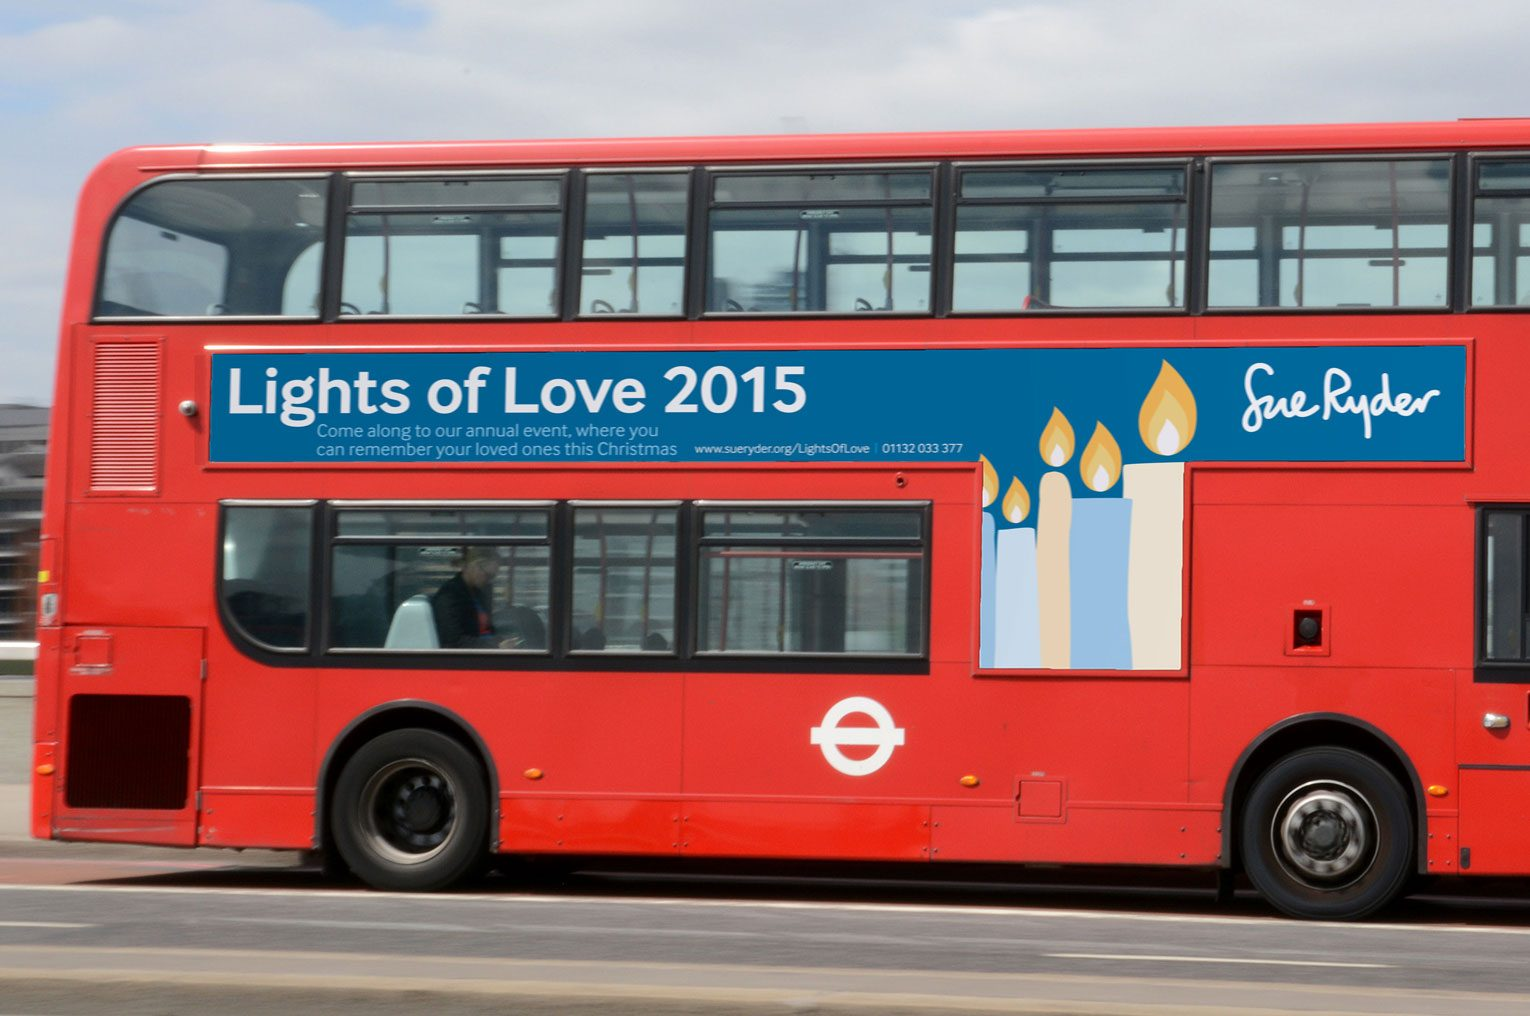 Lights of love services advertised on a red bus.